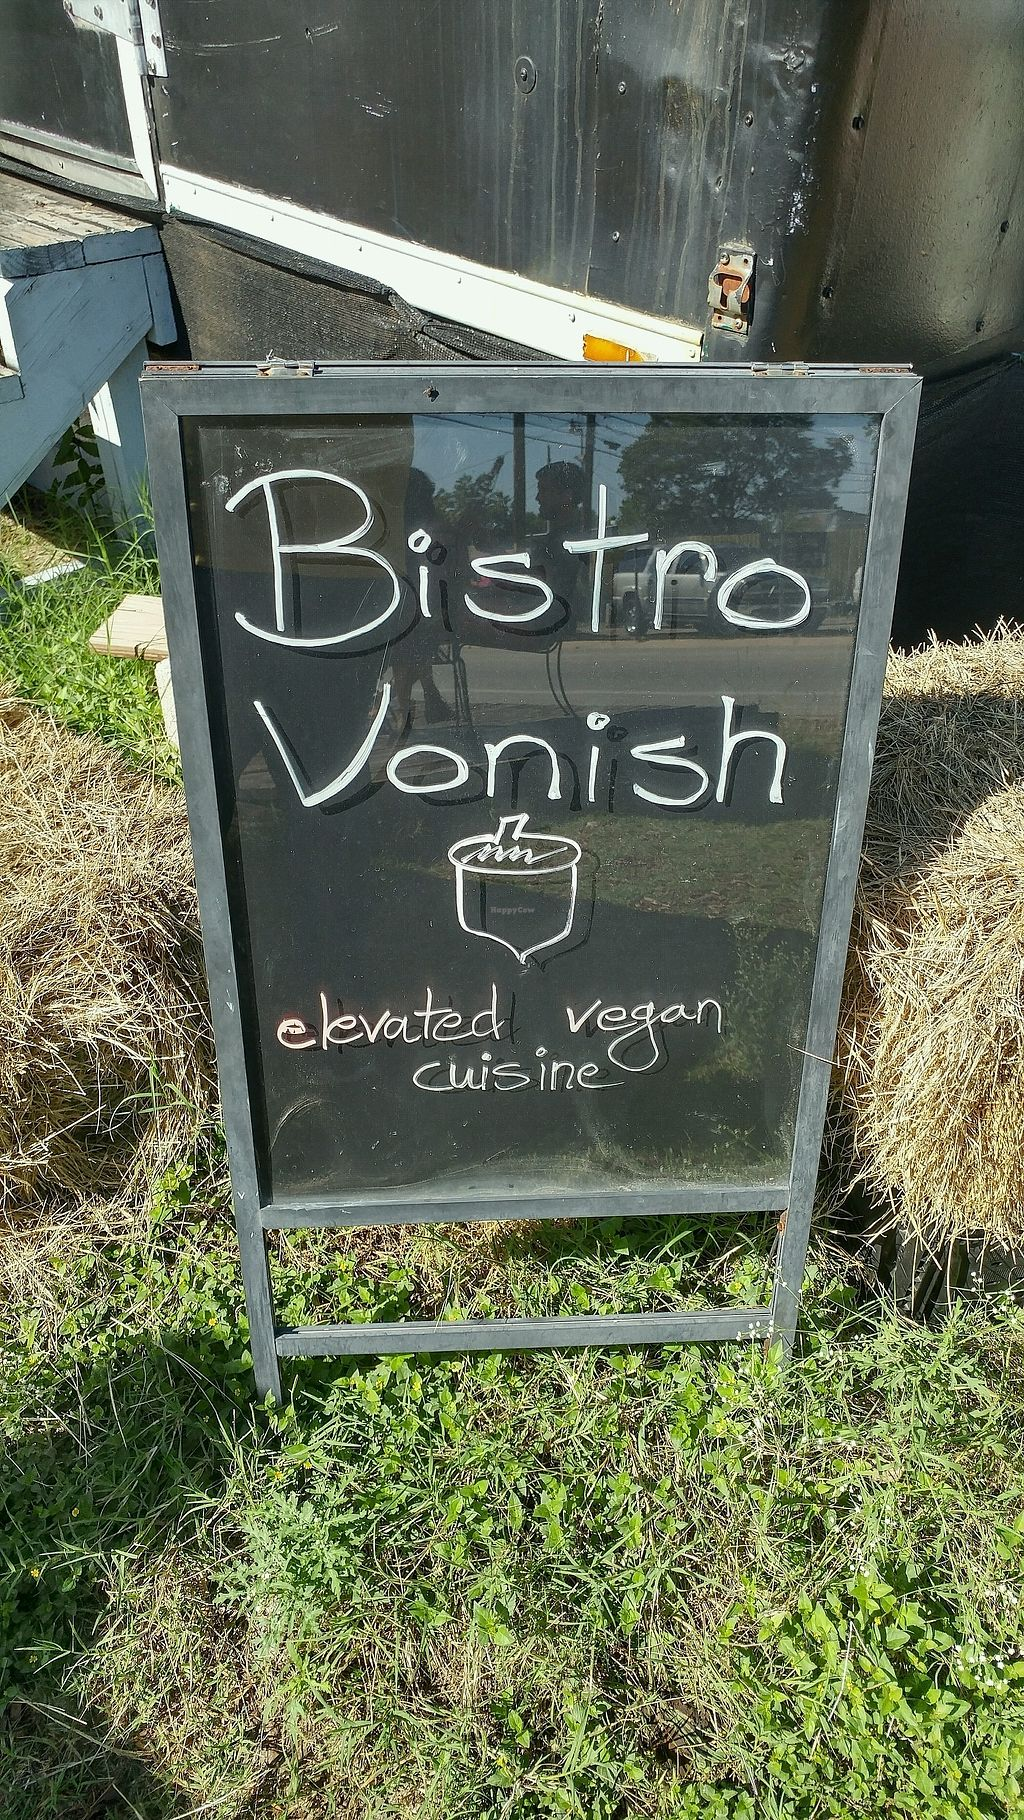 """Photo of Bistro Vonish Food Truck  by <a href=""""/members/profile/TreyLegall"""">TreyLegall</a> <br/>sign <br/> October 1, 2017  - <a href='/contact/abuse/image/54761/310667'>Report</a>"""